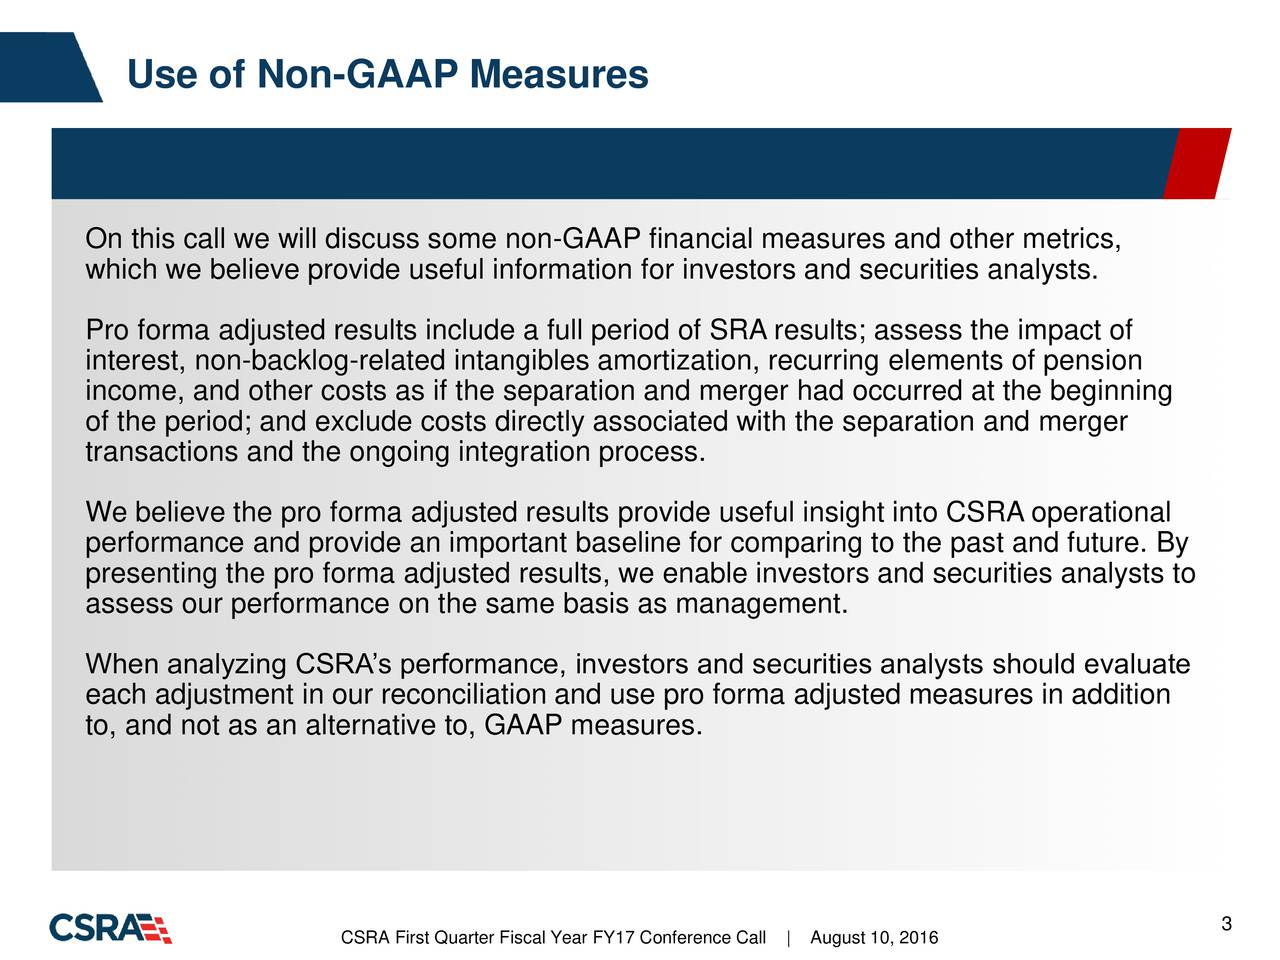 On this call we will discuss some non-GAAP financial measures and other metrics, which we believe provide useful information for investors and securities analysts. Pro forma adjusted results include a full period of SRA results; assess the impact of interest, non-backlog-related intangibles amortization, recurring elements of pension income, and other costs as if the separation and merger had occurred at the beginning of the period; and exclude costs directly associated with the separation and merger transactions and the ongoing integration process. We believe the pro forma adjusted results provide useful insight into CSRA operational performance and provide an important baseline for comparing to the past and future. By presenting the pro forma adjusted results, we enable investors and securities analysts to assess our performance on the same basis as management. When analyzing CSRAs performance, investors and securities analysts should evaluate each adjustment in our reconciliation and use pro forma adjusted measures in addition to, and not as an alternative to, GAAP measures. CSRA First Quarter Fiscal Year FY17 Co|fAugust 10, 2016 3